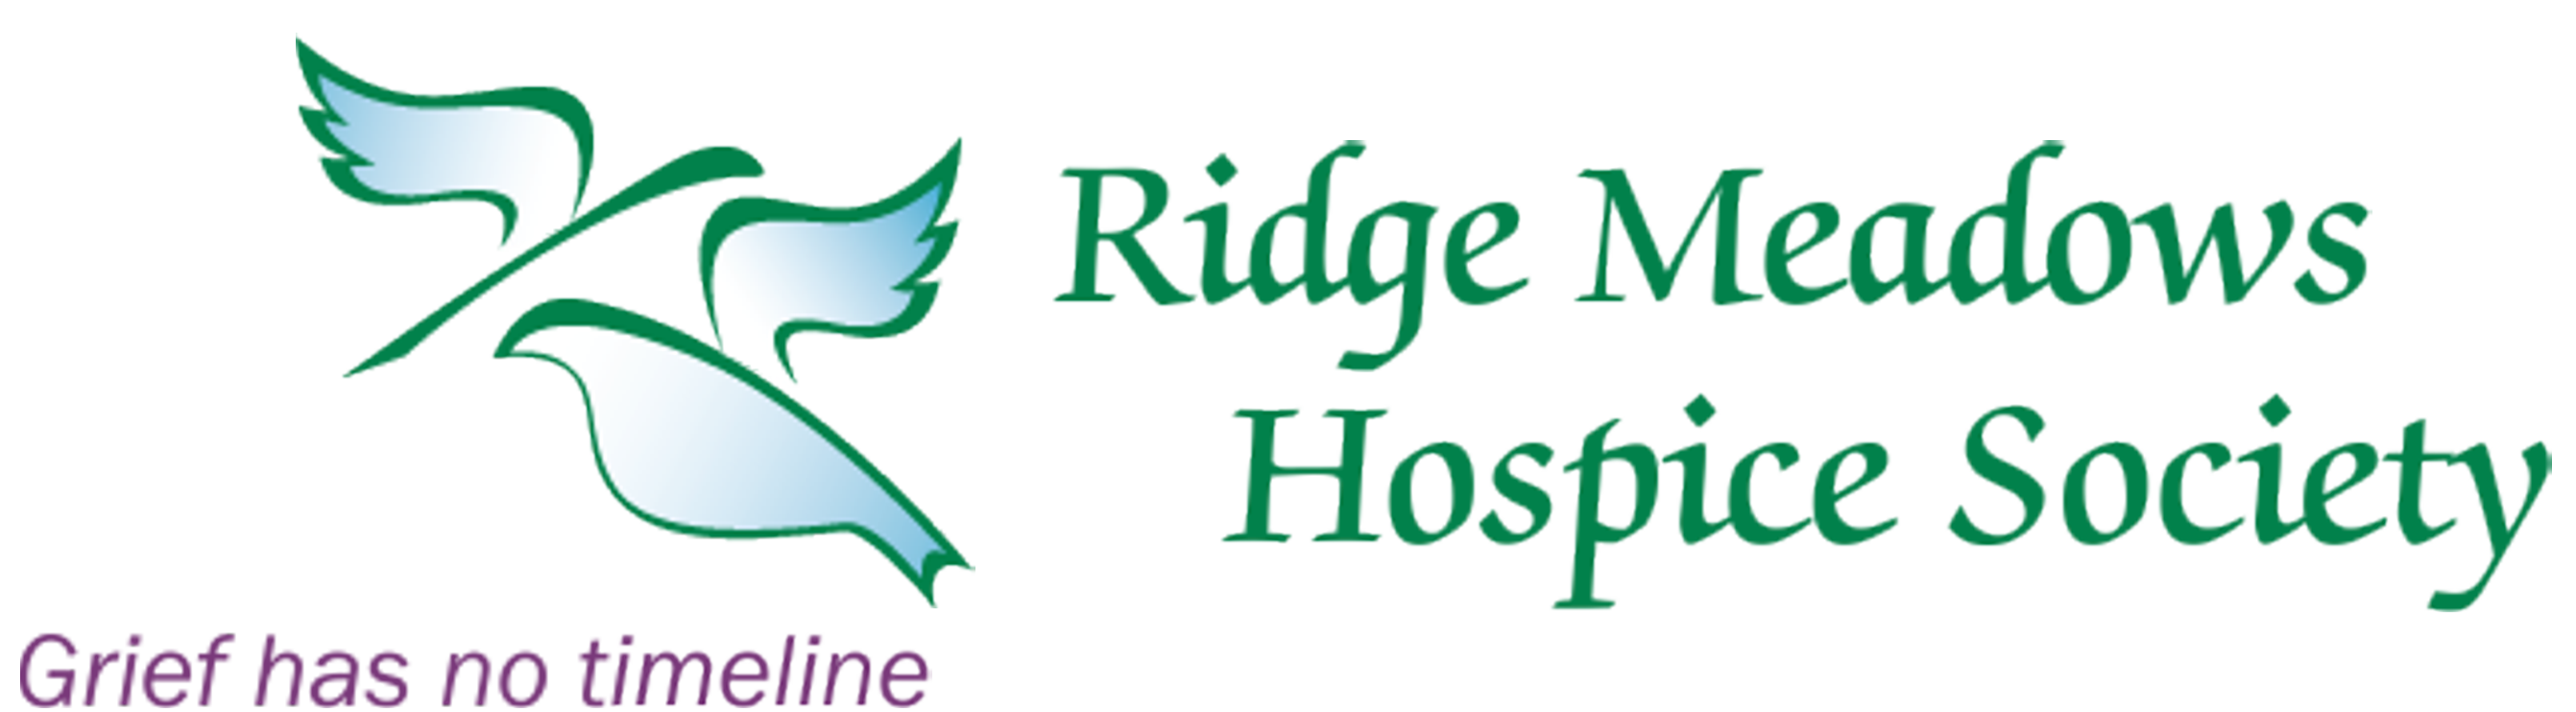 Ridge Meadows Hospice Society